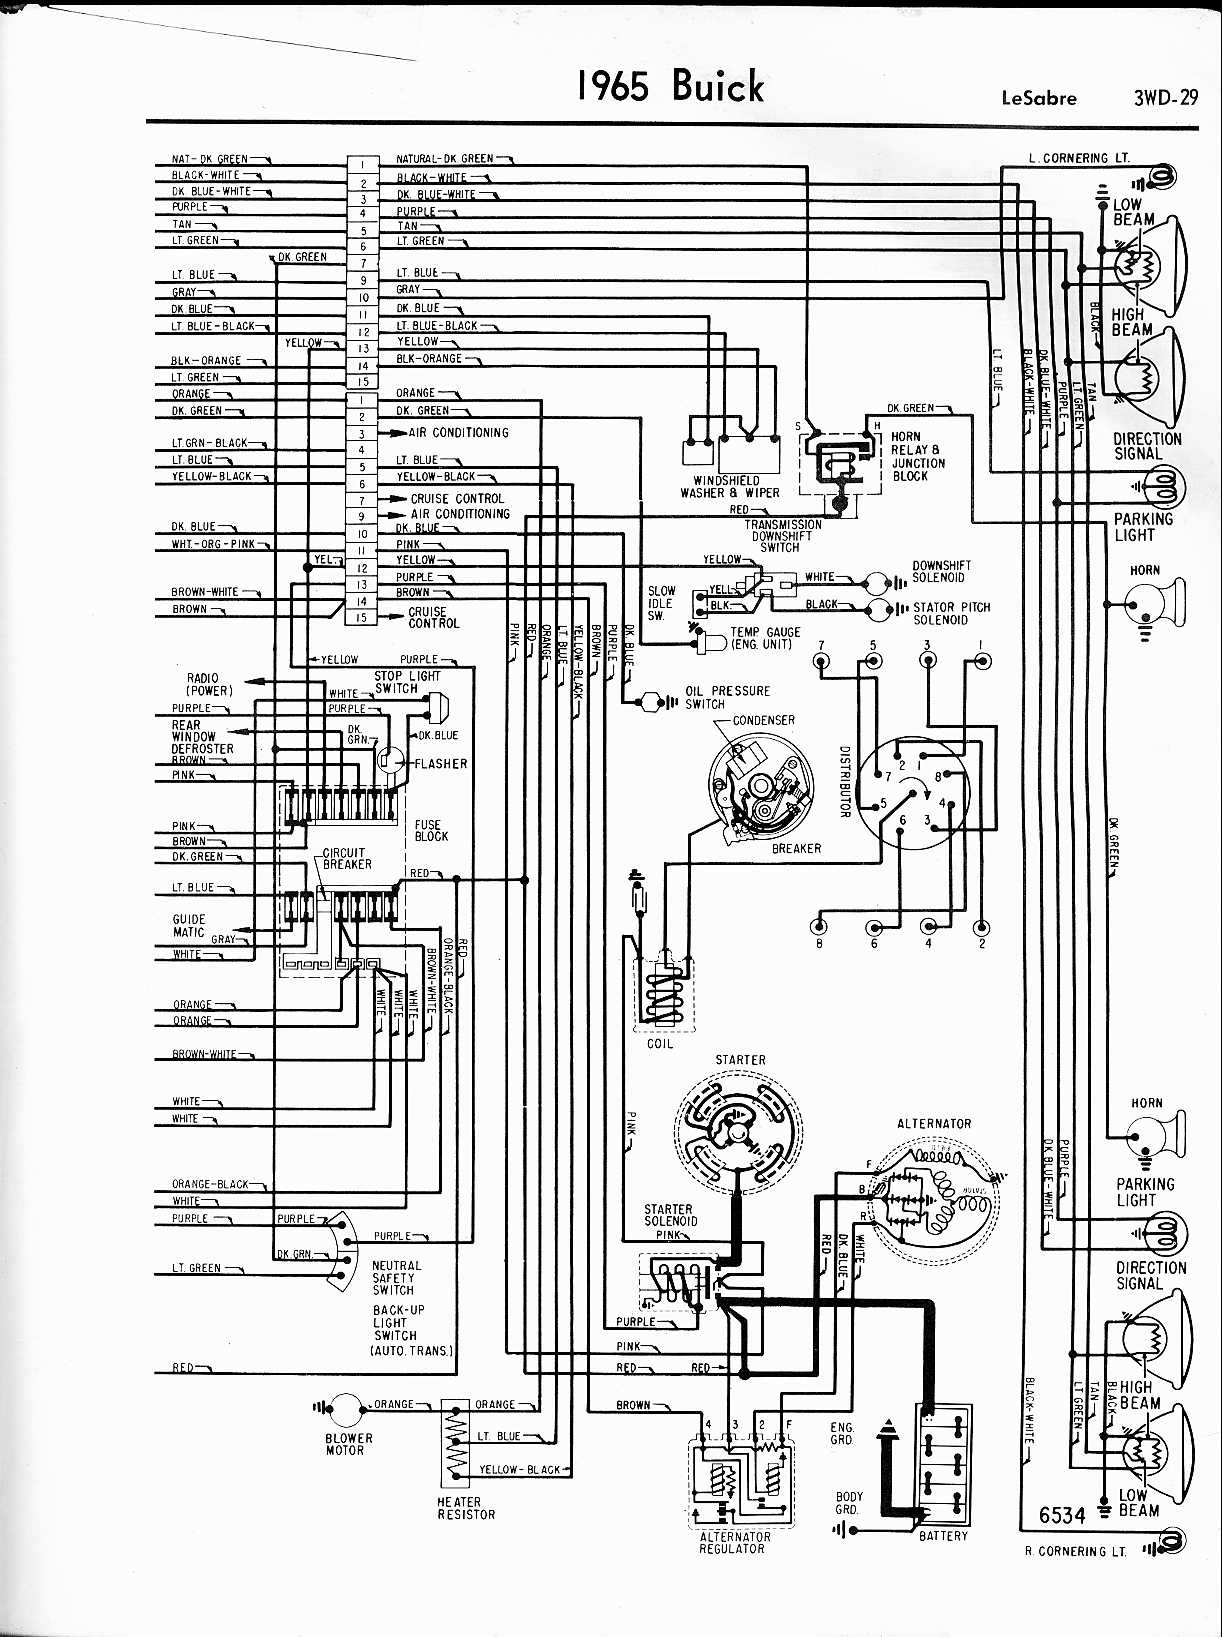 1973 buick bce series wiring diagram